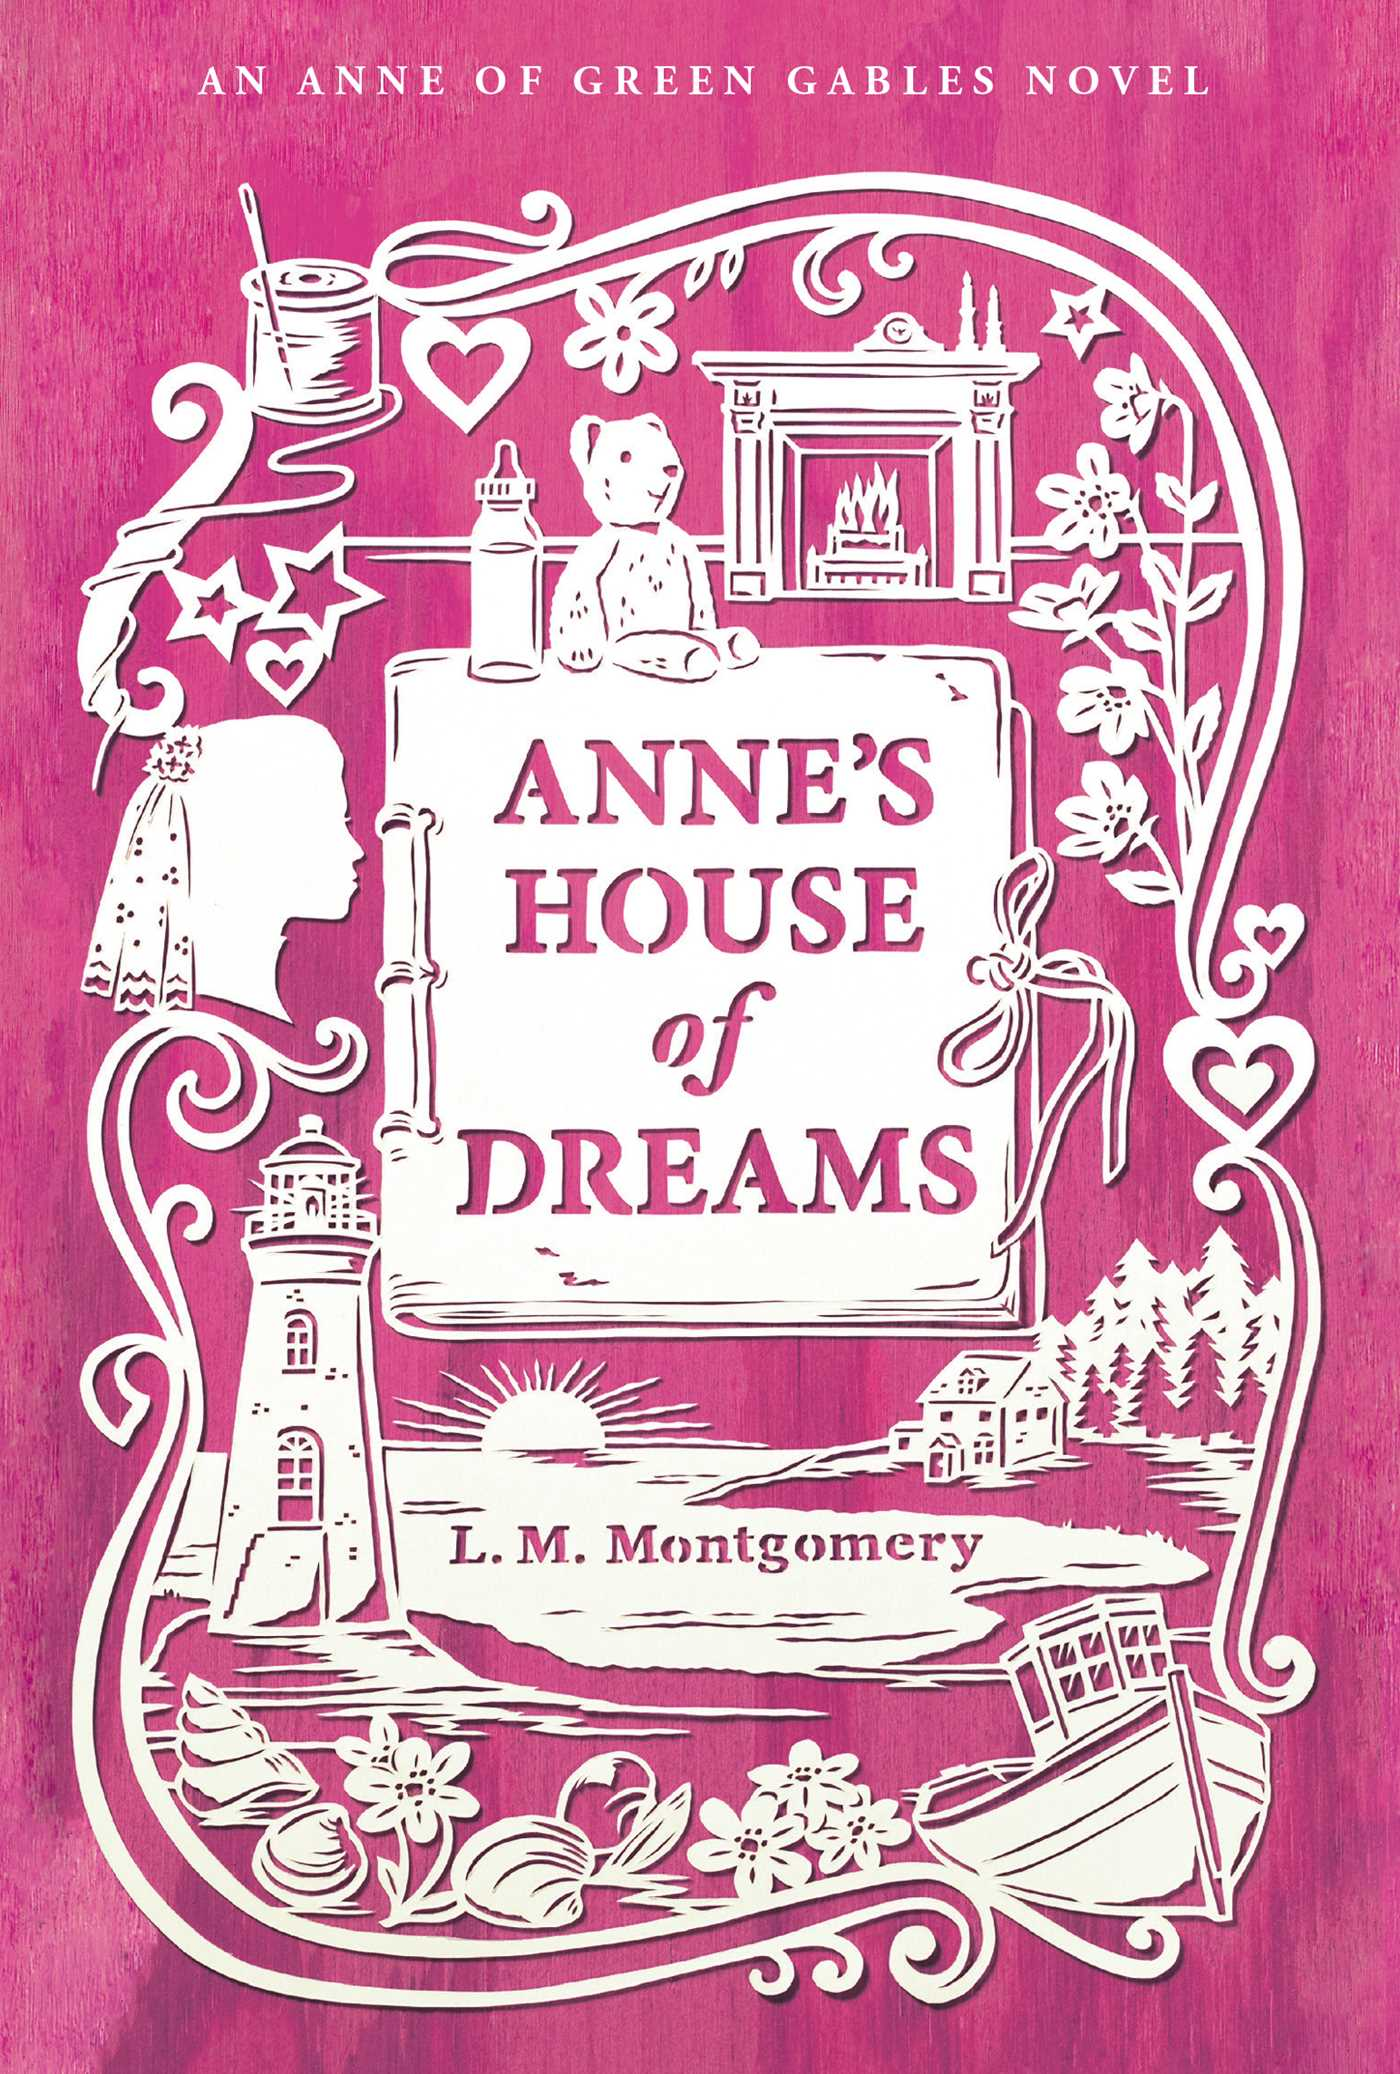 Annes house of dreams 9781442490109 hr